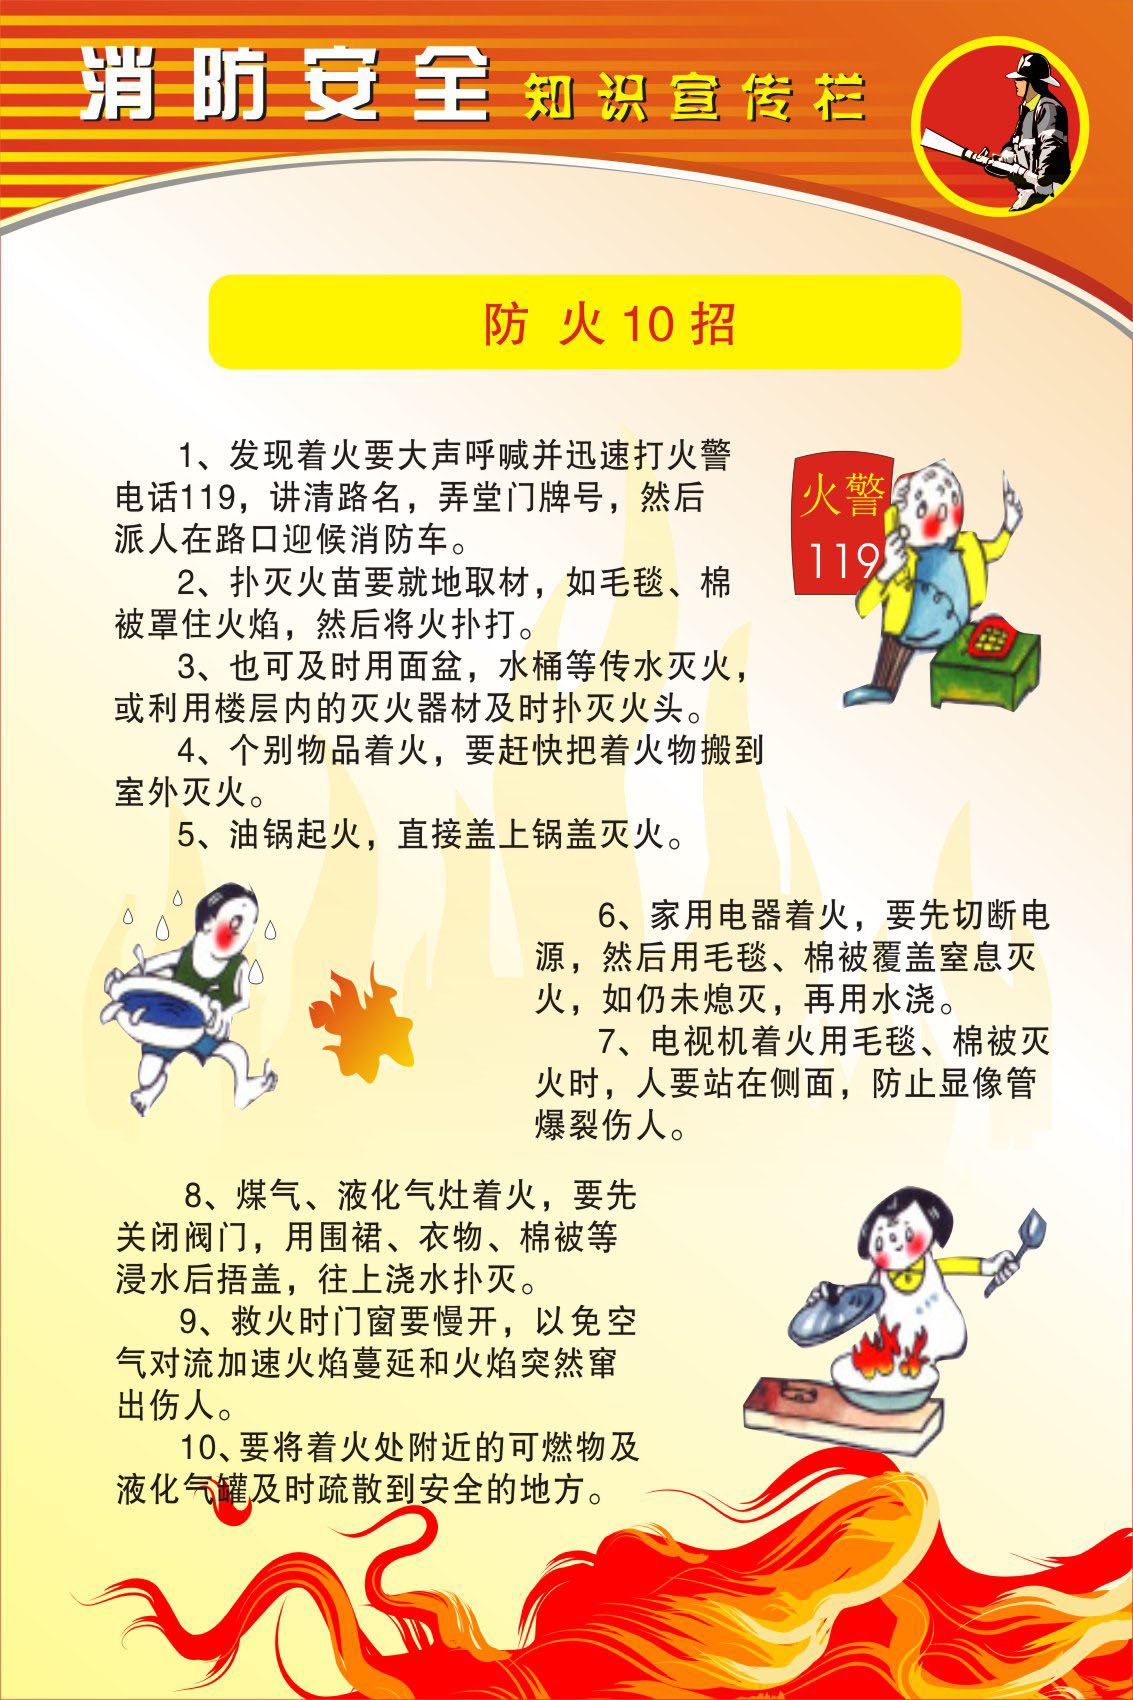 733 poster panels inkjet sticker printing 957 fire safety knowledge map (3) 6 fire 10 strokes